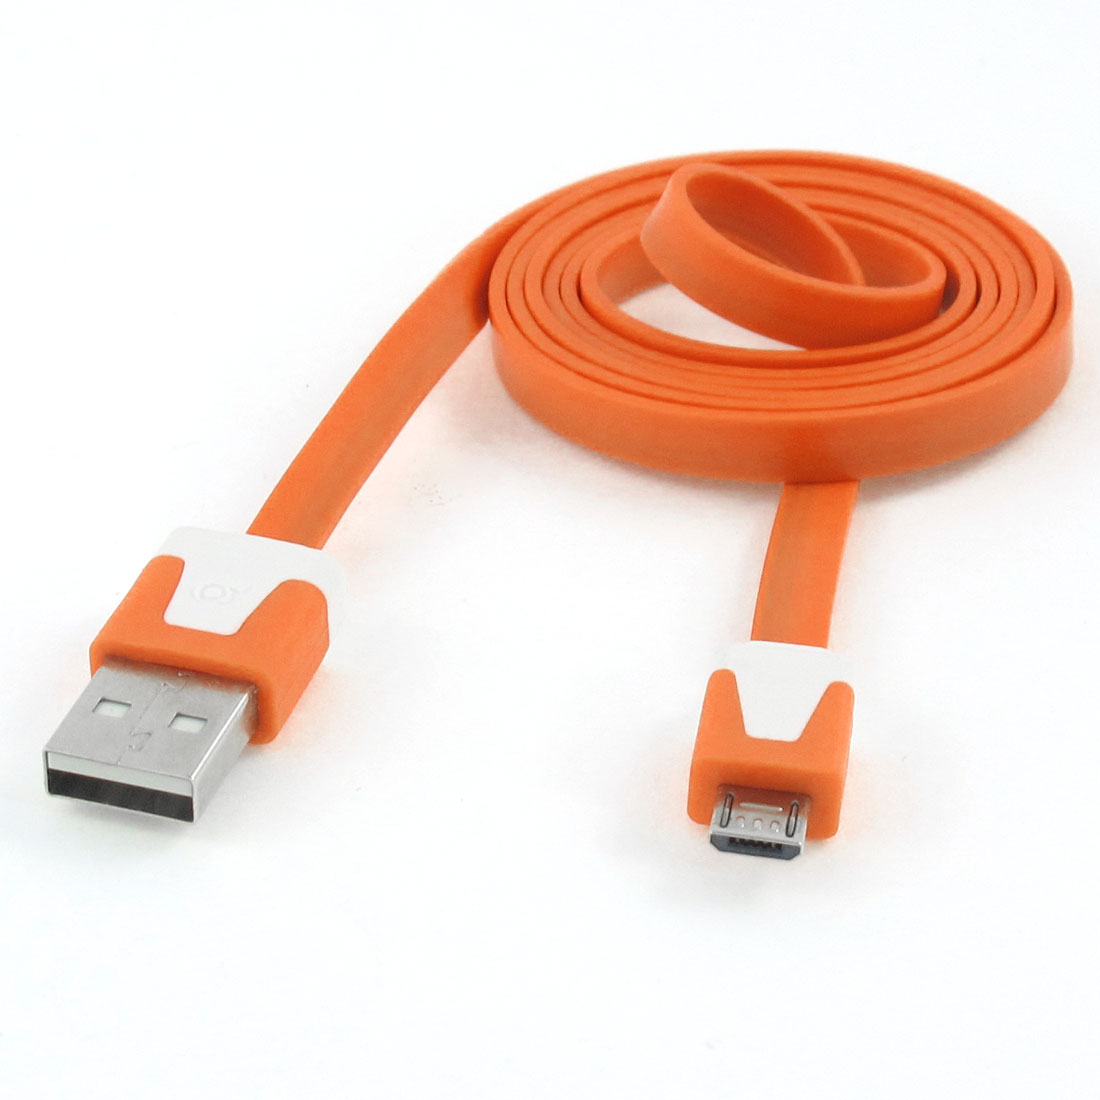 1M Orange USB Type A to Micro 5 Pin USB PC Data Changer Cable Line